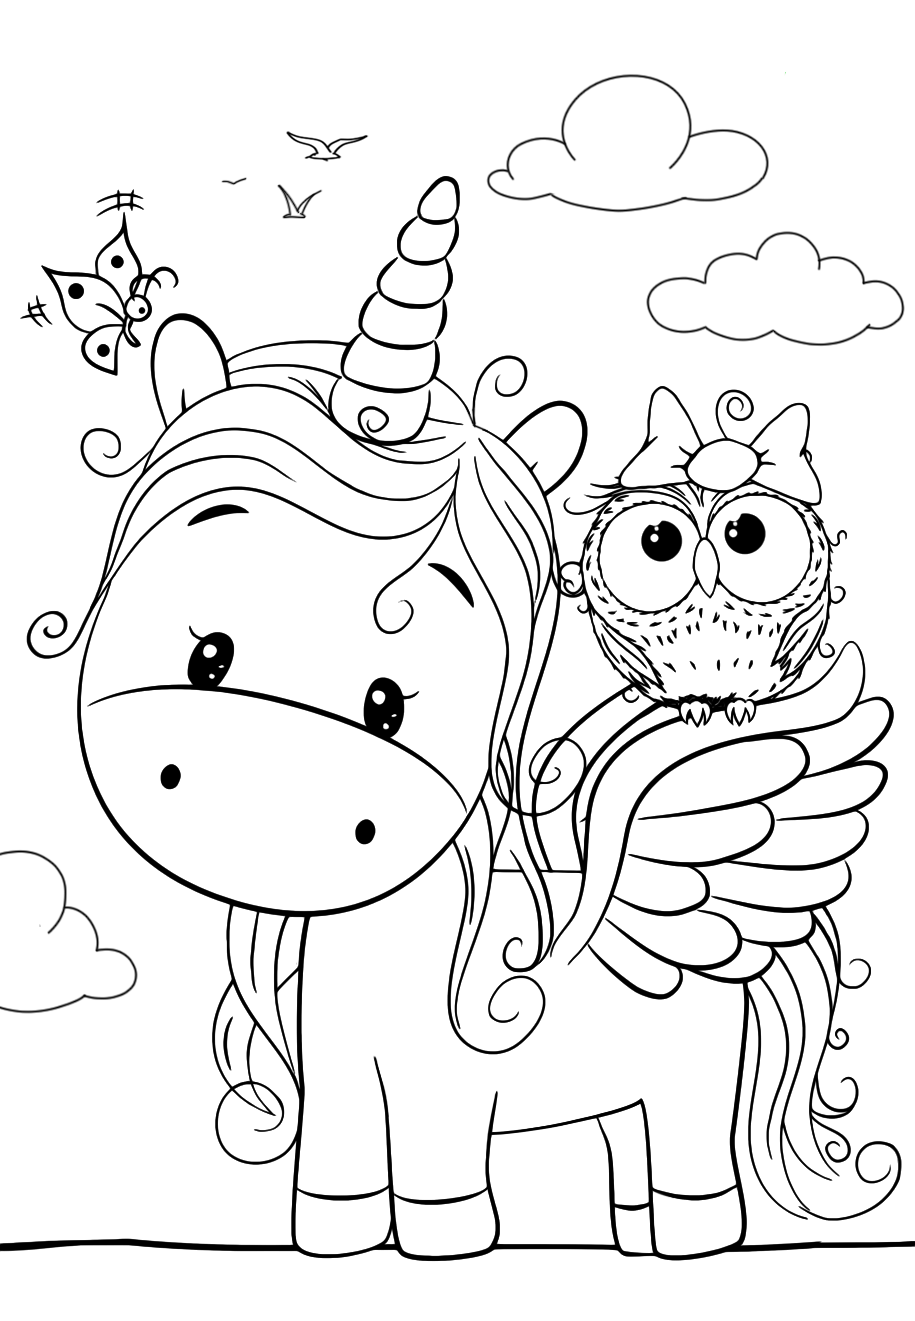 coloring cute pictures cute unicorn with an owl coloring pages for you cute pictures coloring